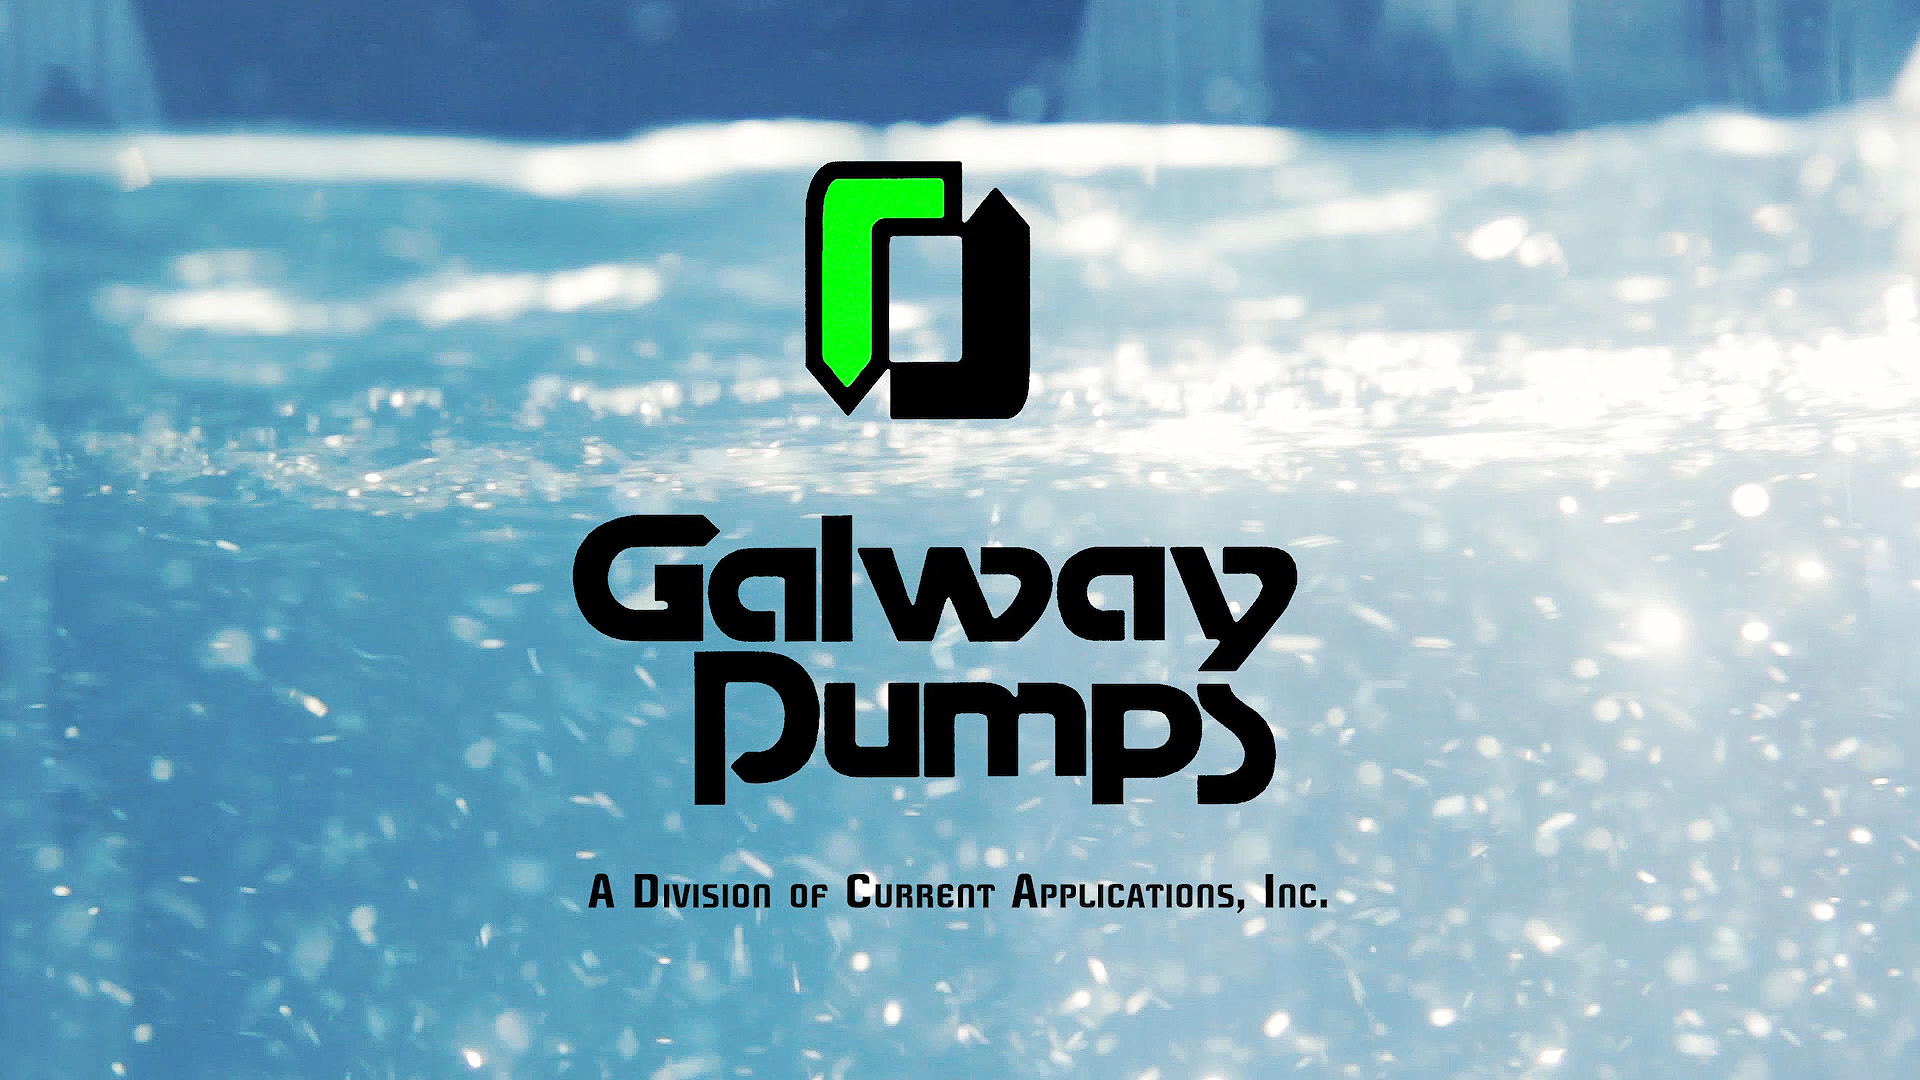 Galway Pumps Video